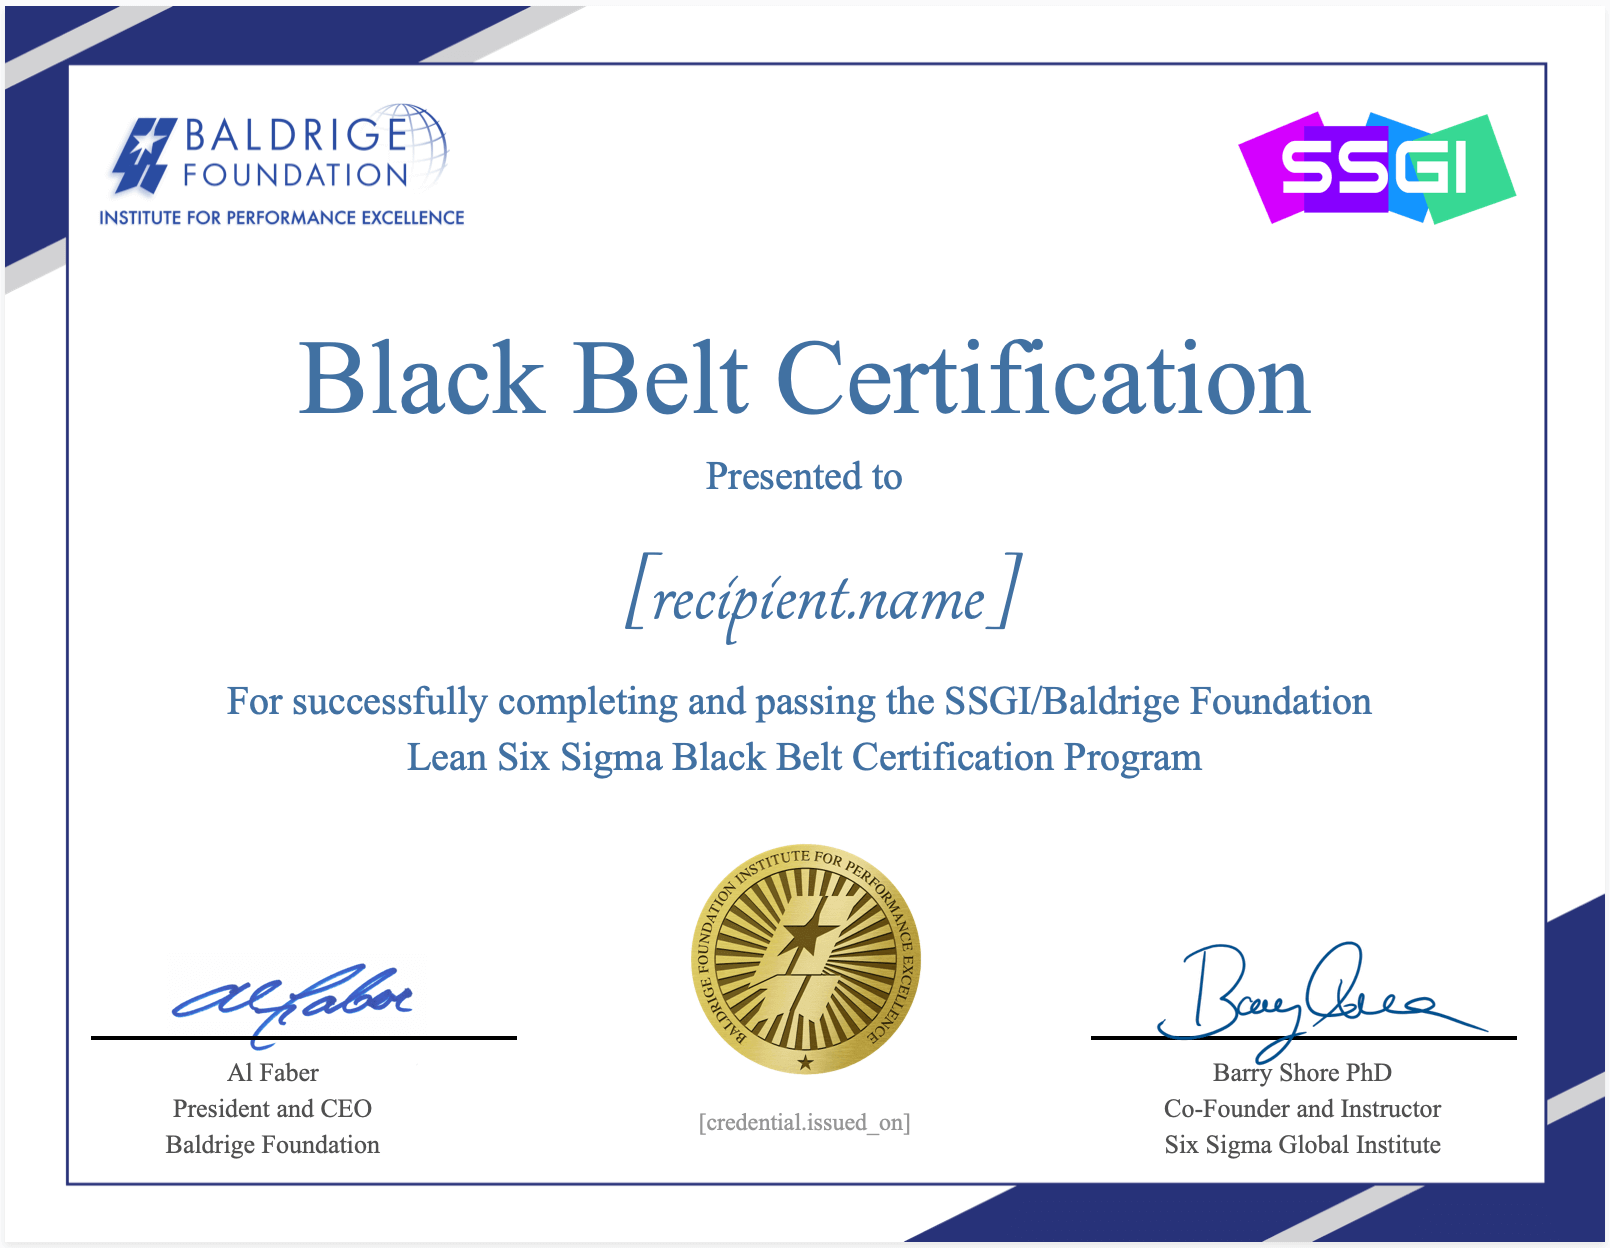 ssgi baldrige six sigma black belt